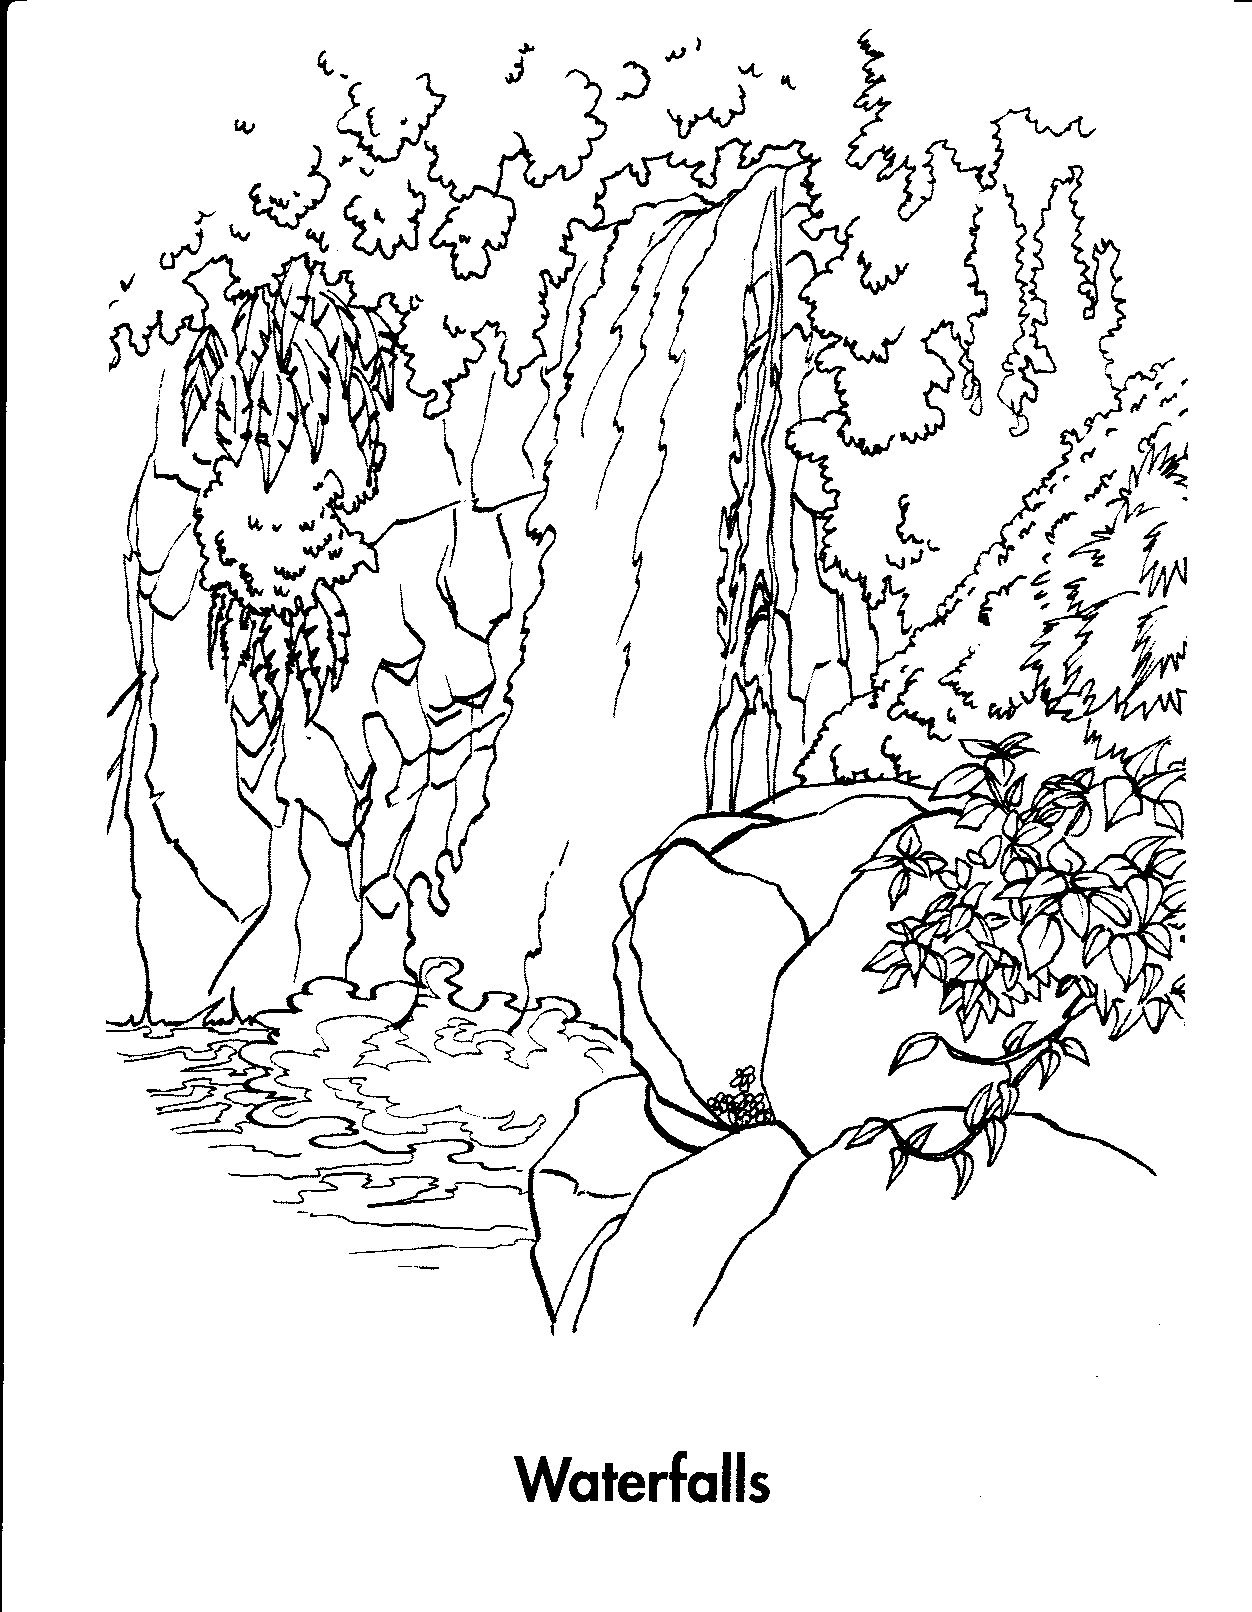 Waterfall Coloring Pages Printable | Photos | Insect Coloring Pages - Free Printable Waterfall Coloring Pages